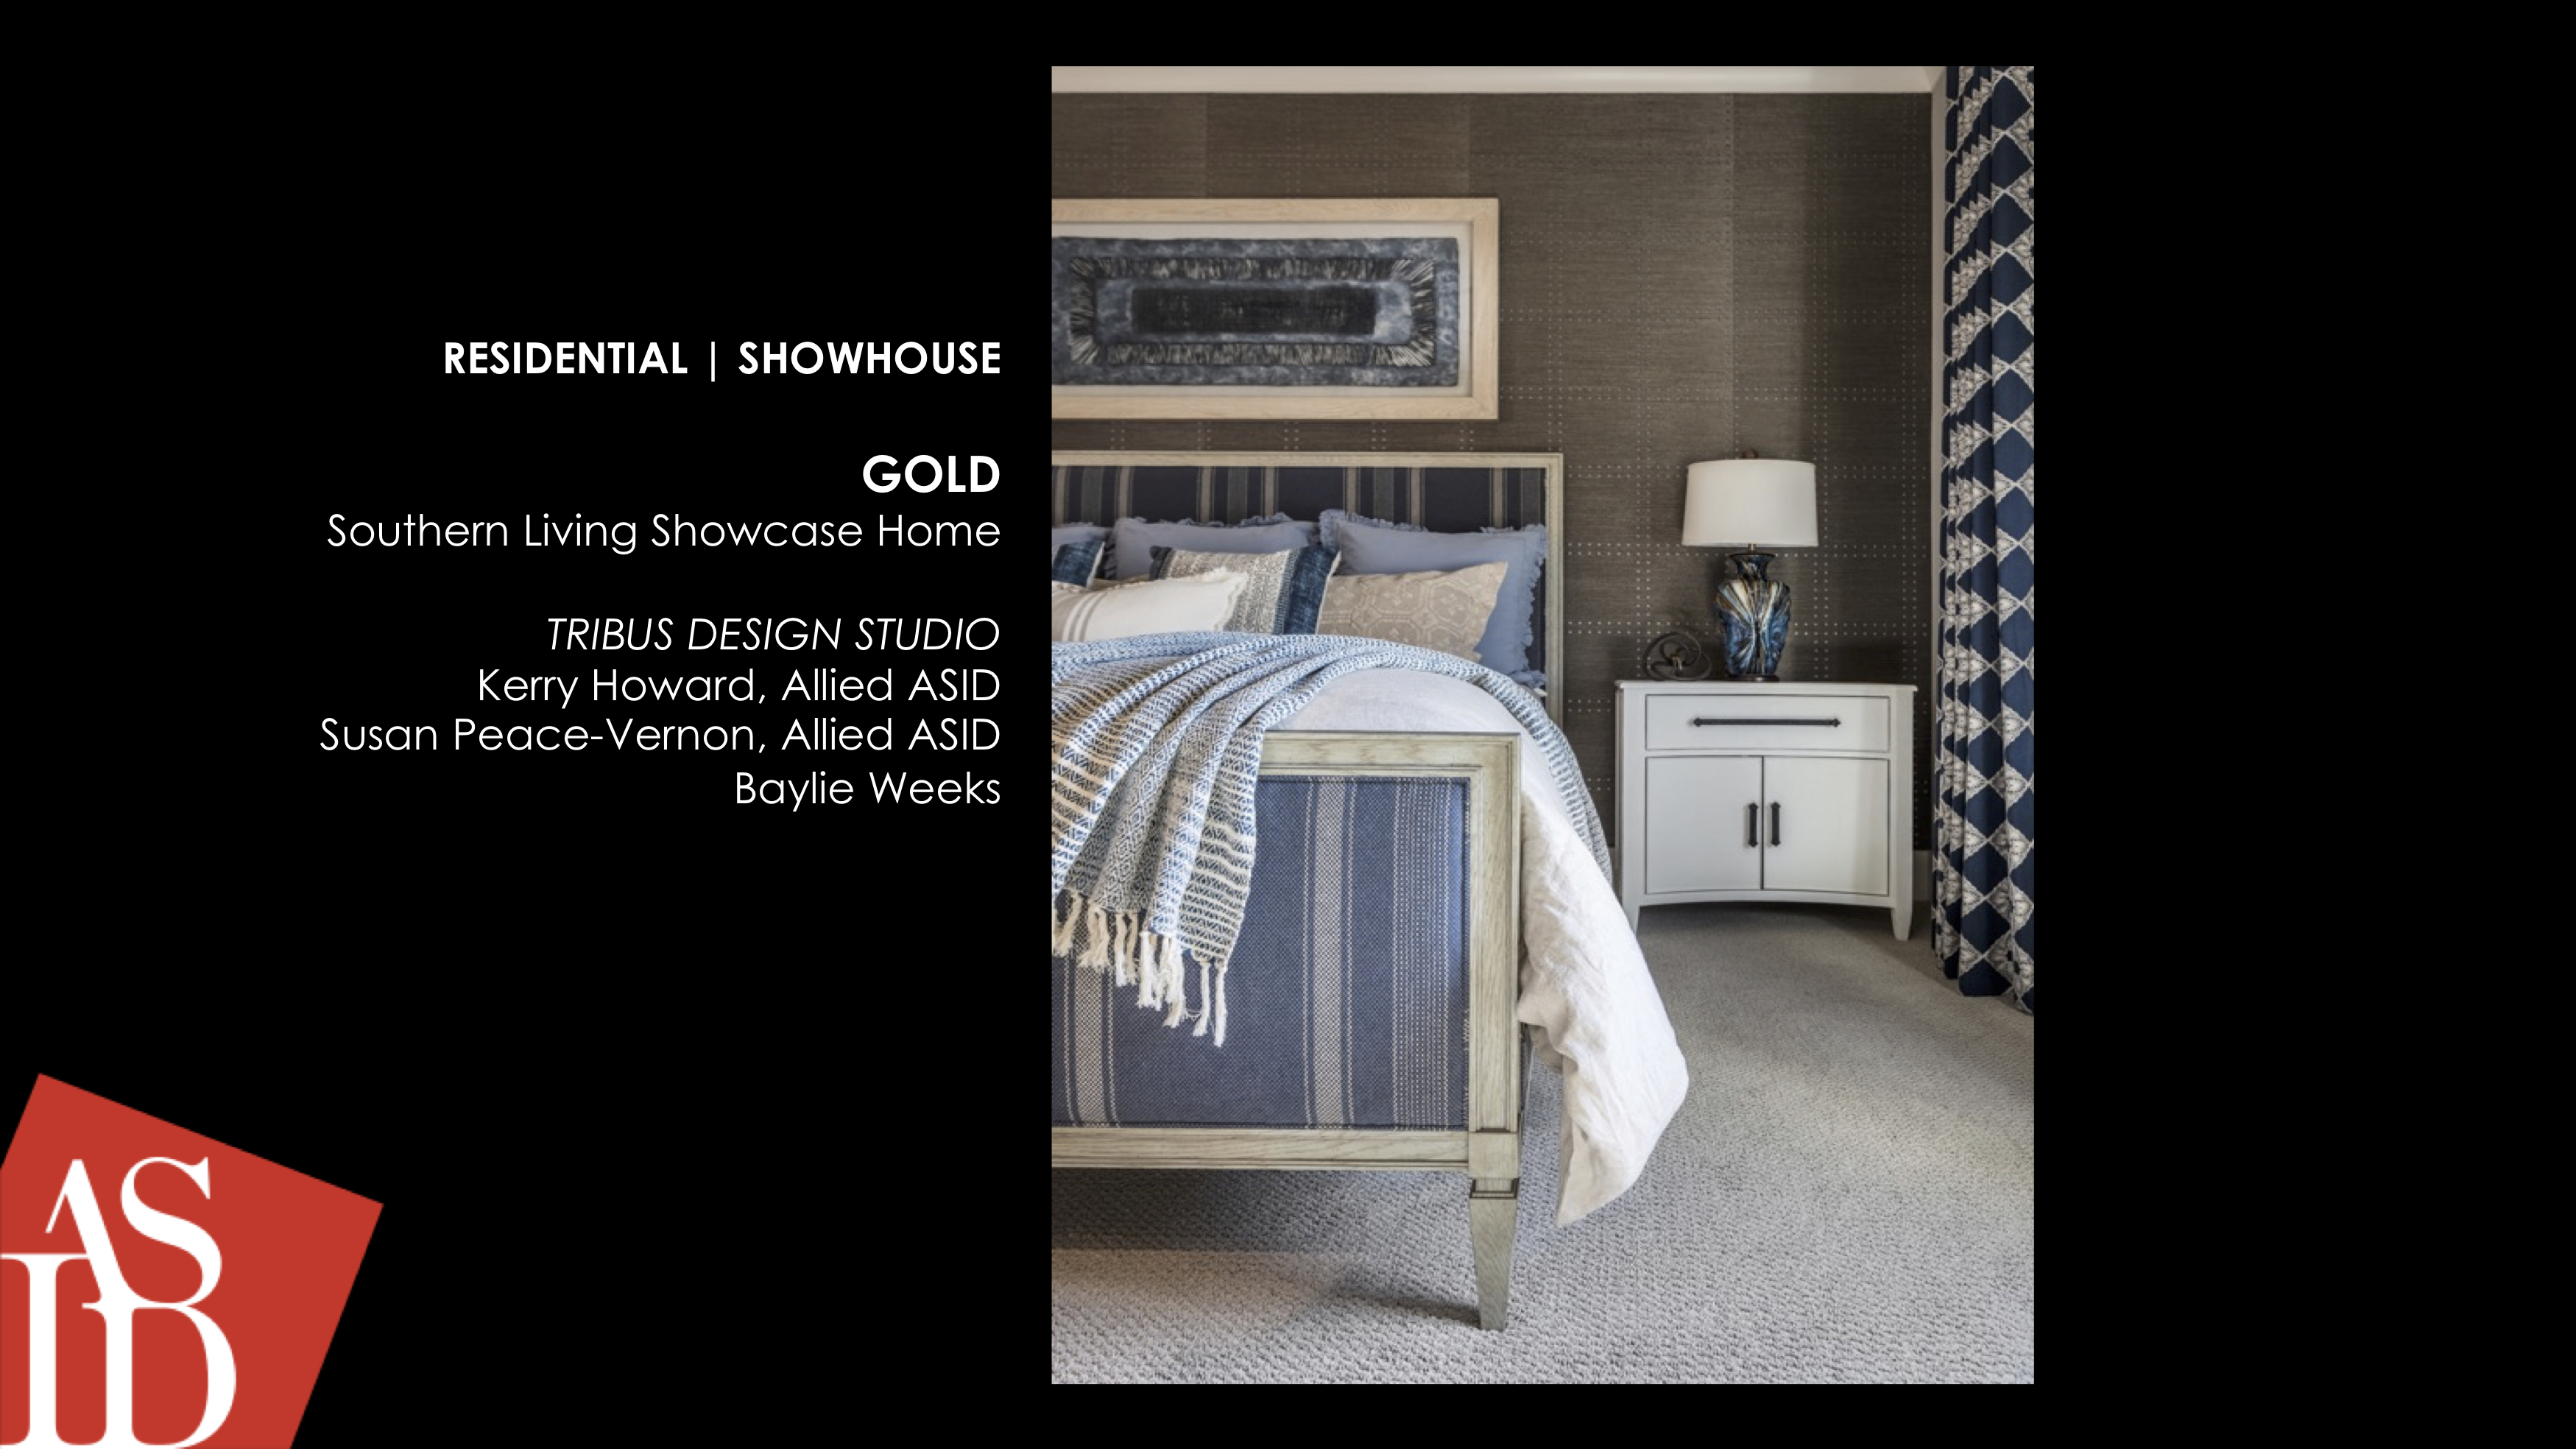 SHOW HOUSE | GOLD